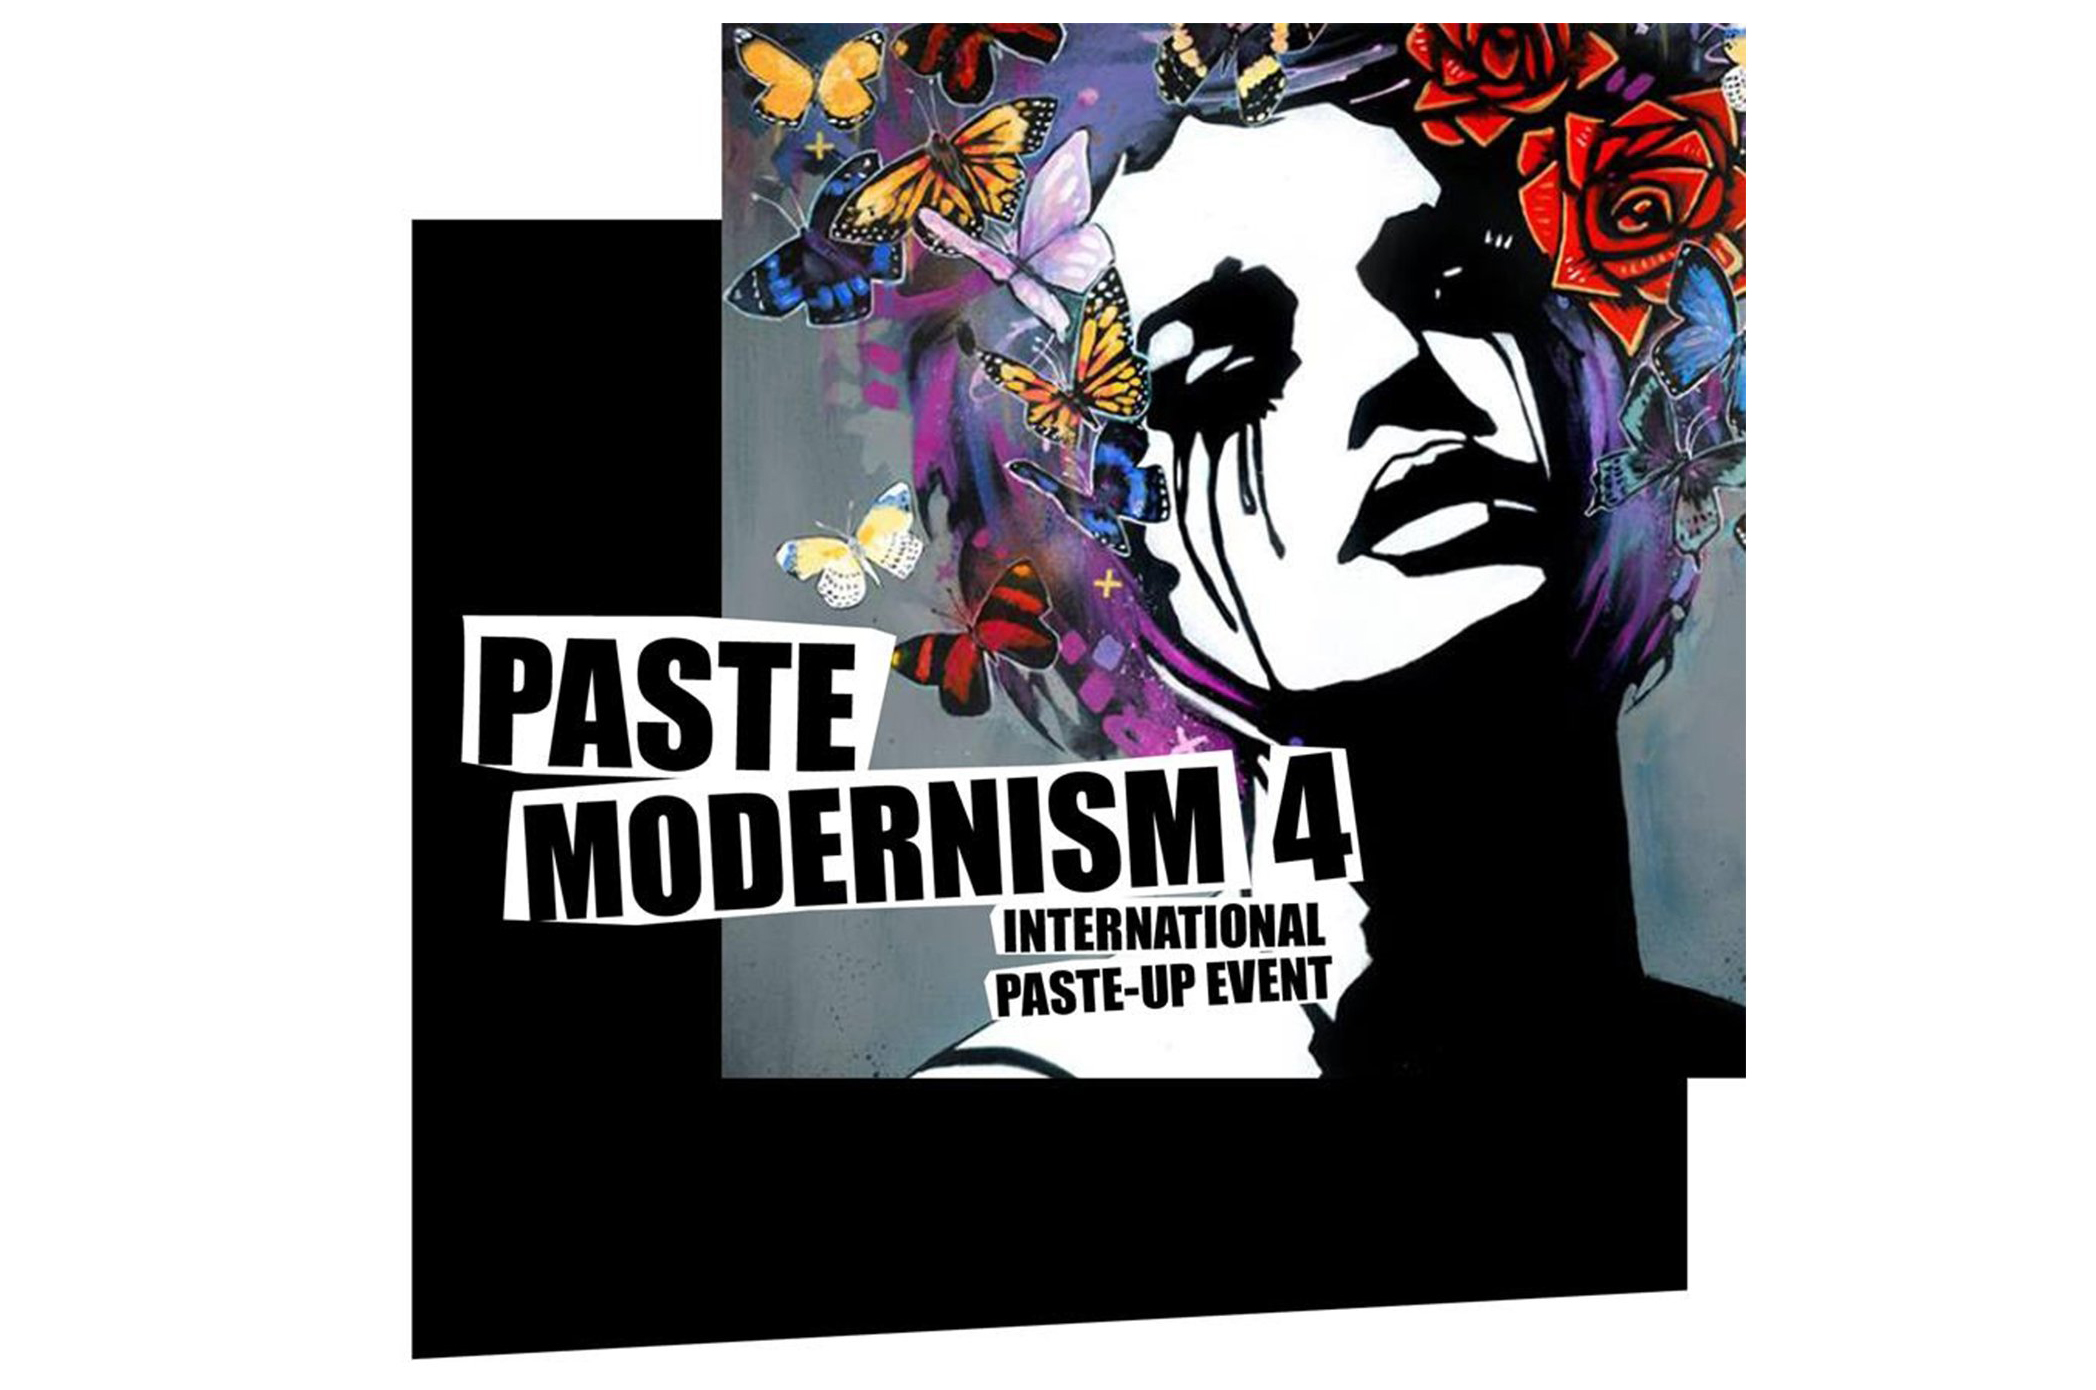 paste modernism 4 event curated by Ben Frost